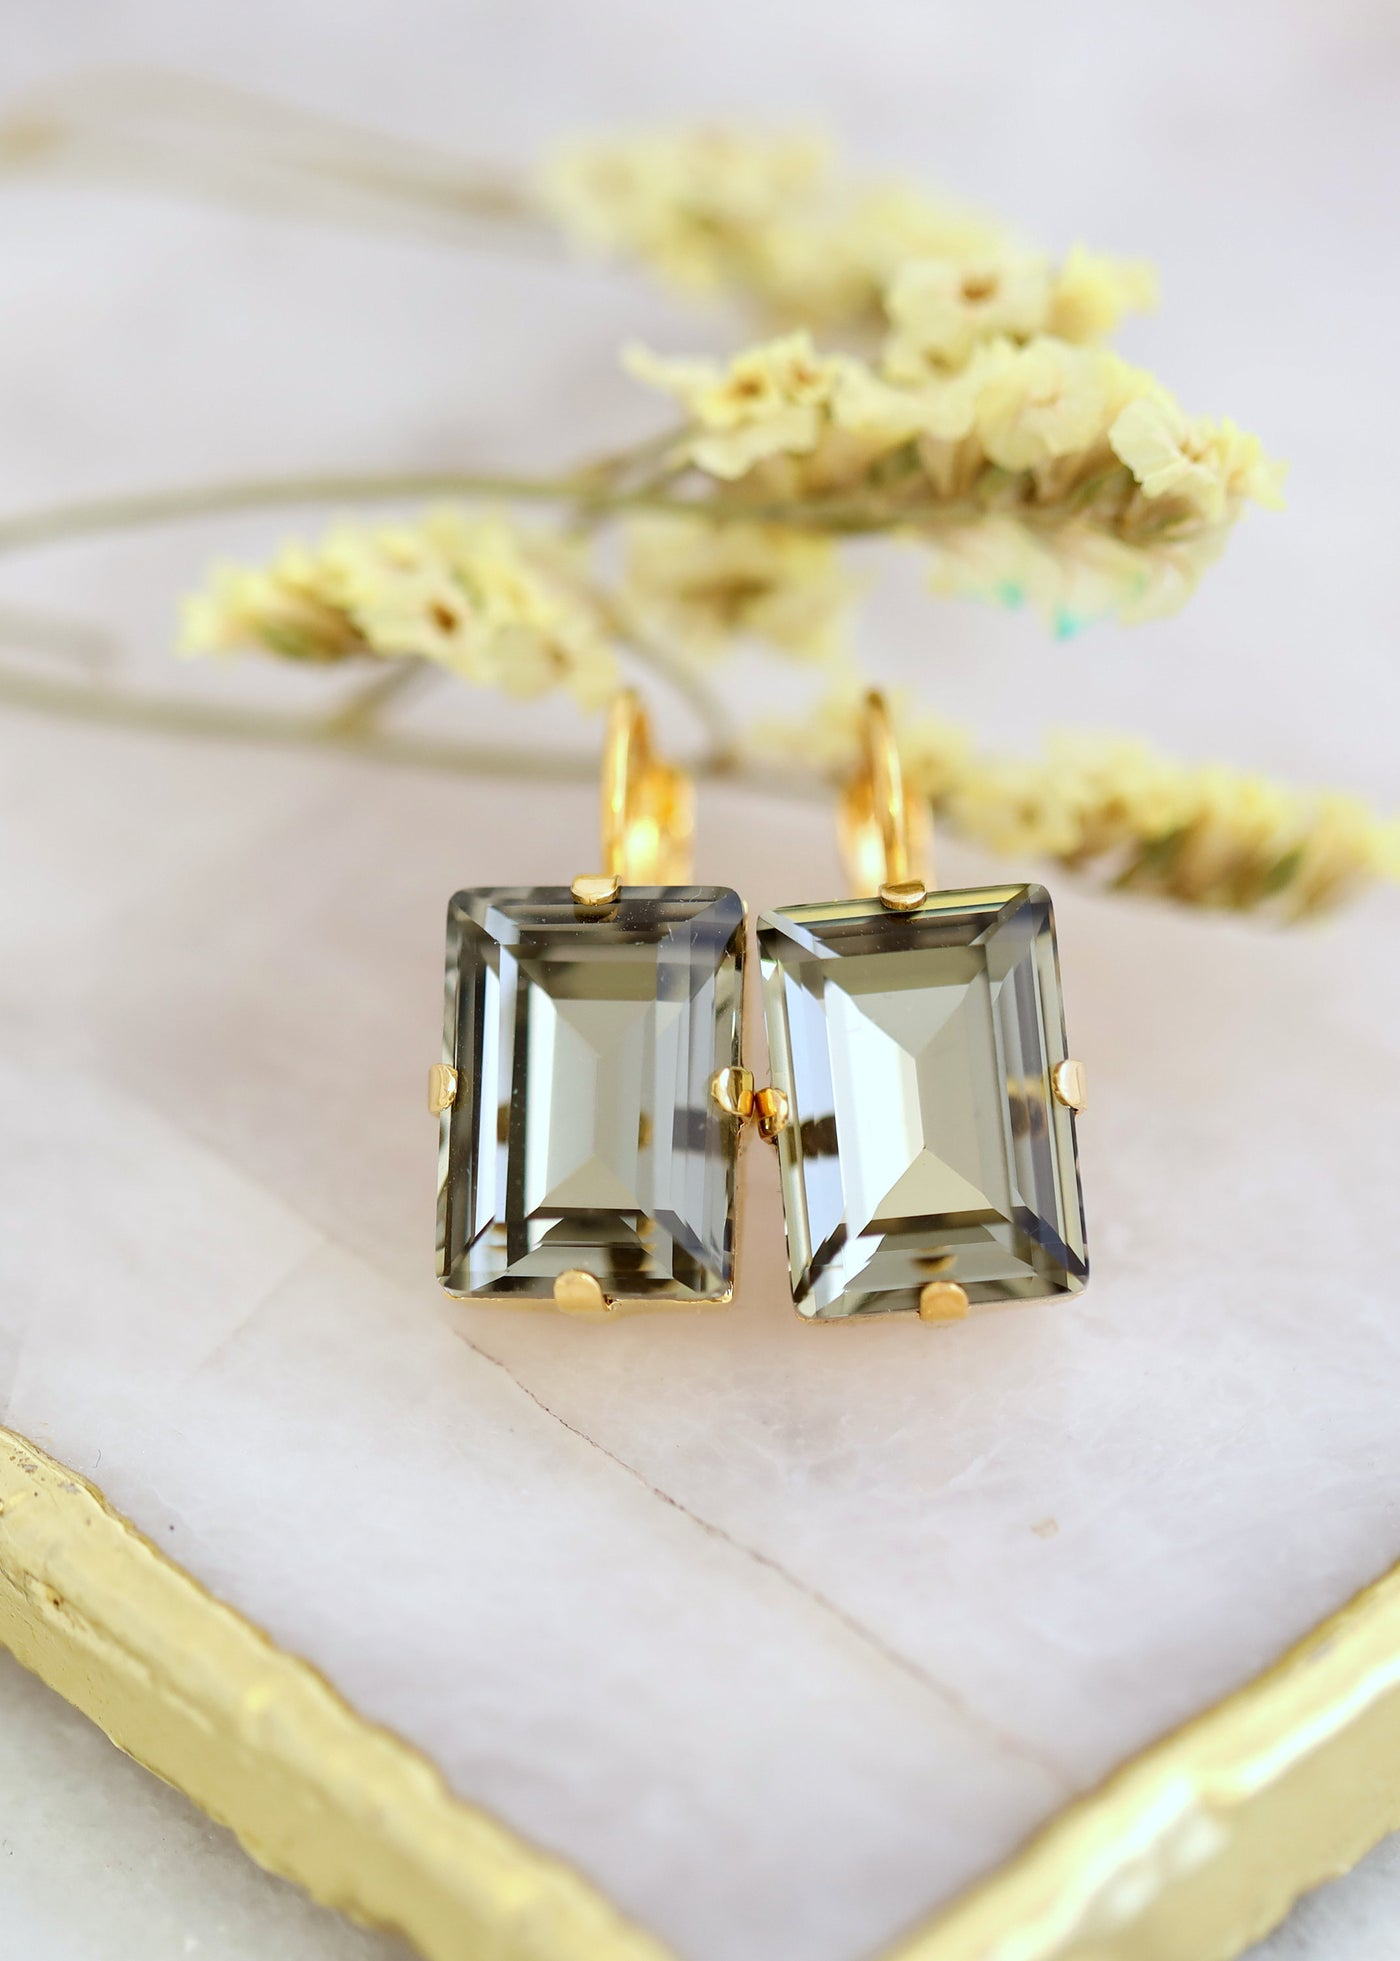 Gray Drop Earrings, Dark Gay Earrings, Bridal Gray Earrings, Gray Crystal Earrings, Gift For Her, Bridesmaids Earrings, Emerald Cut Earrings